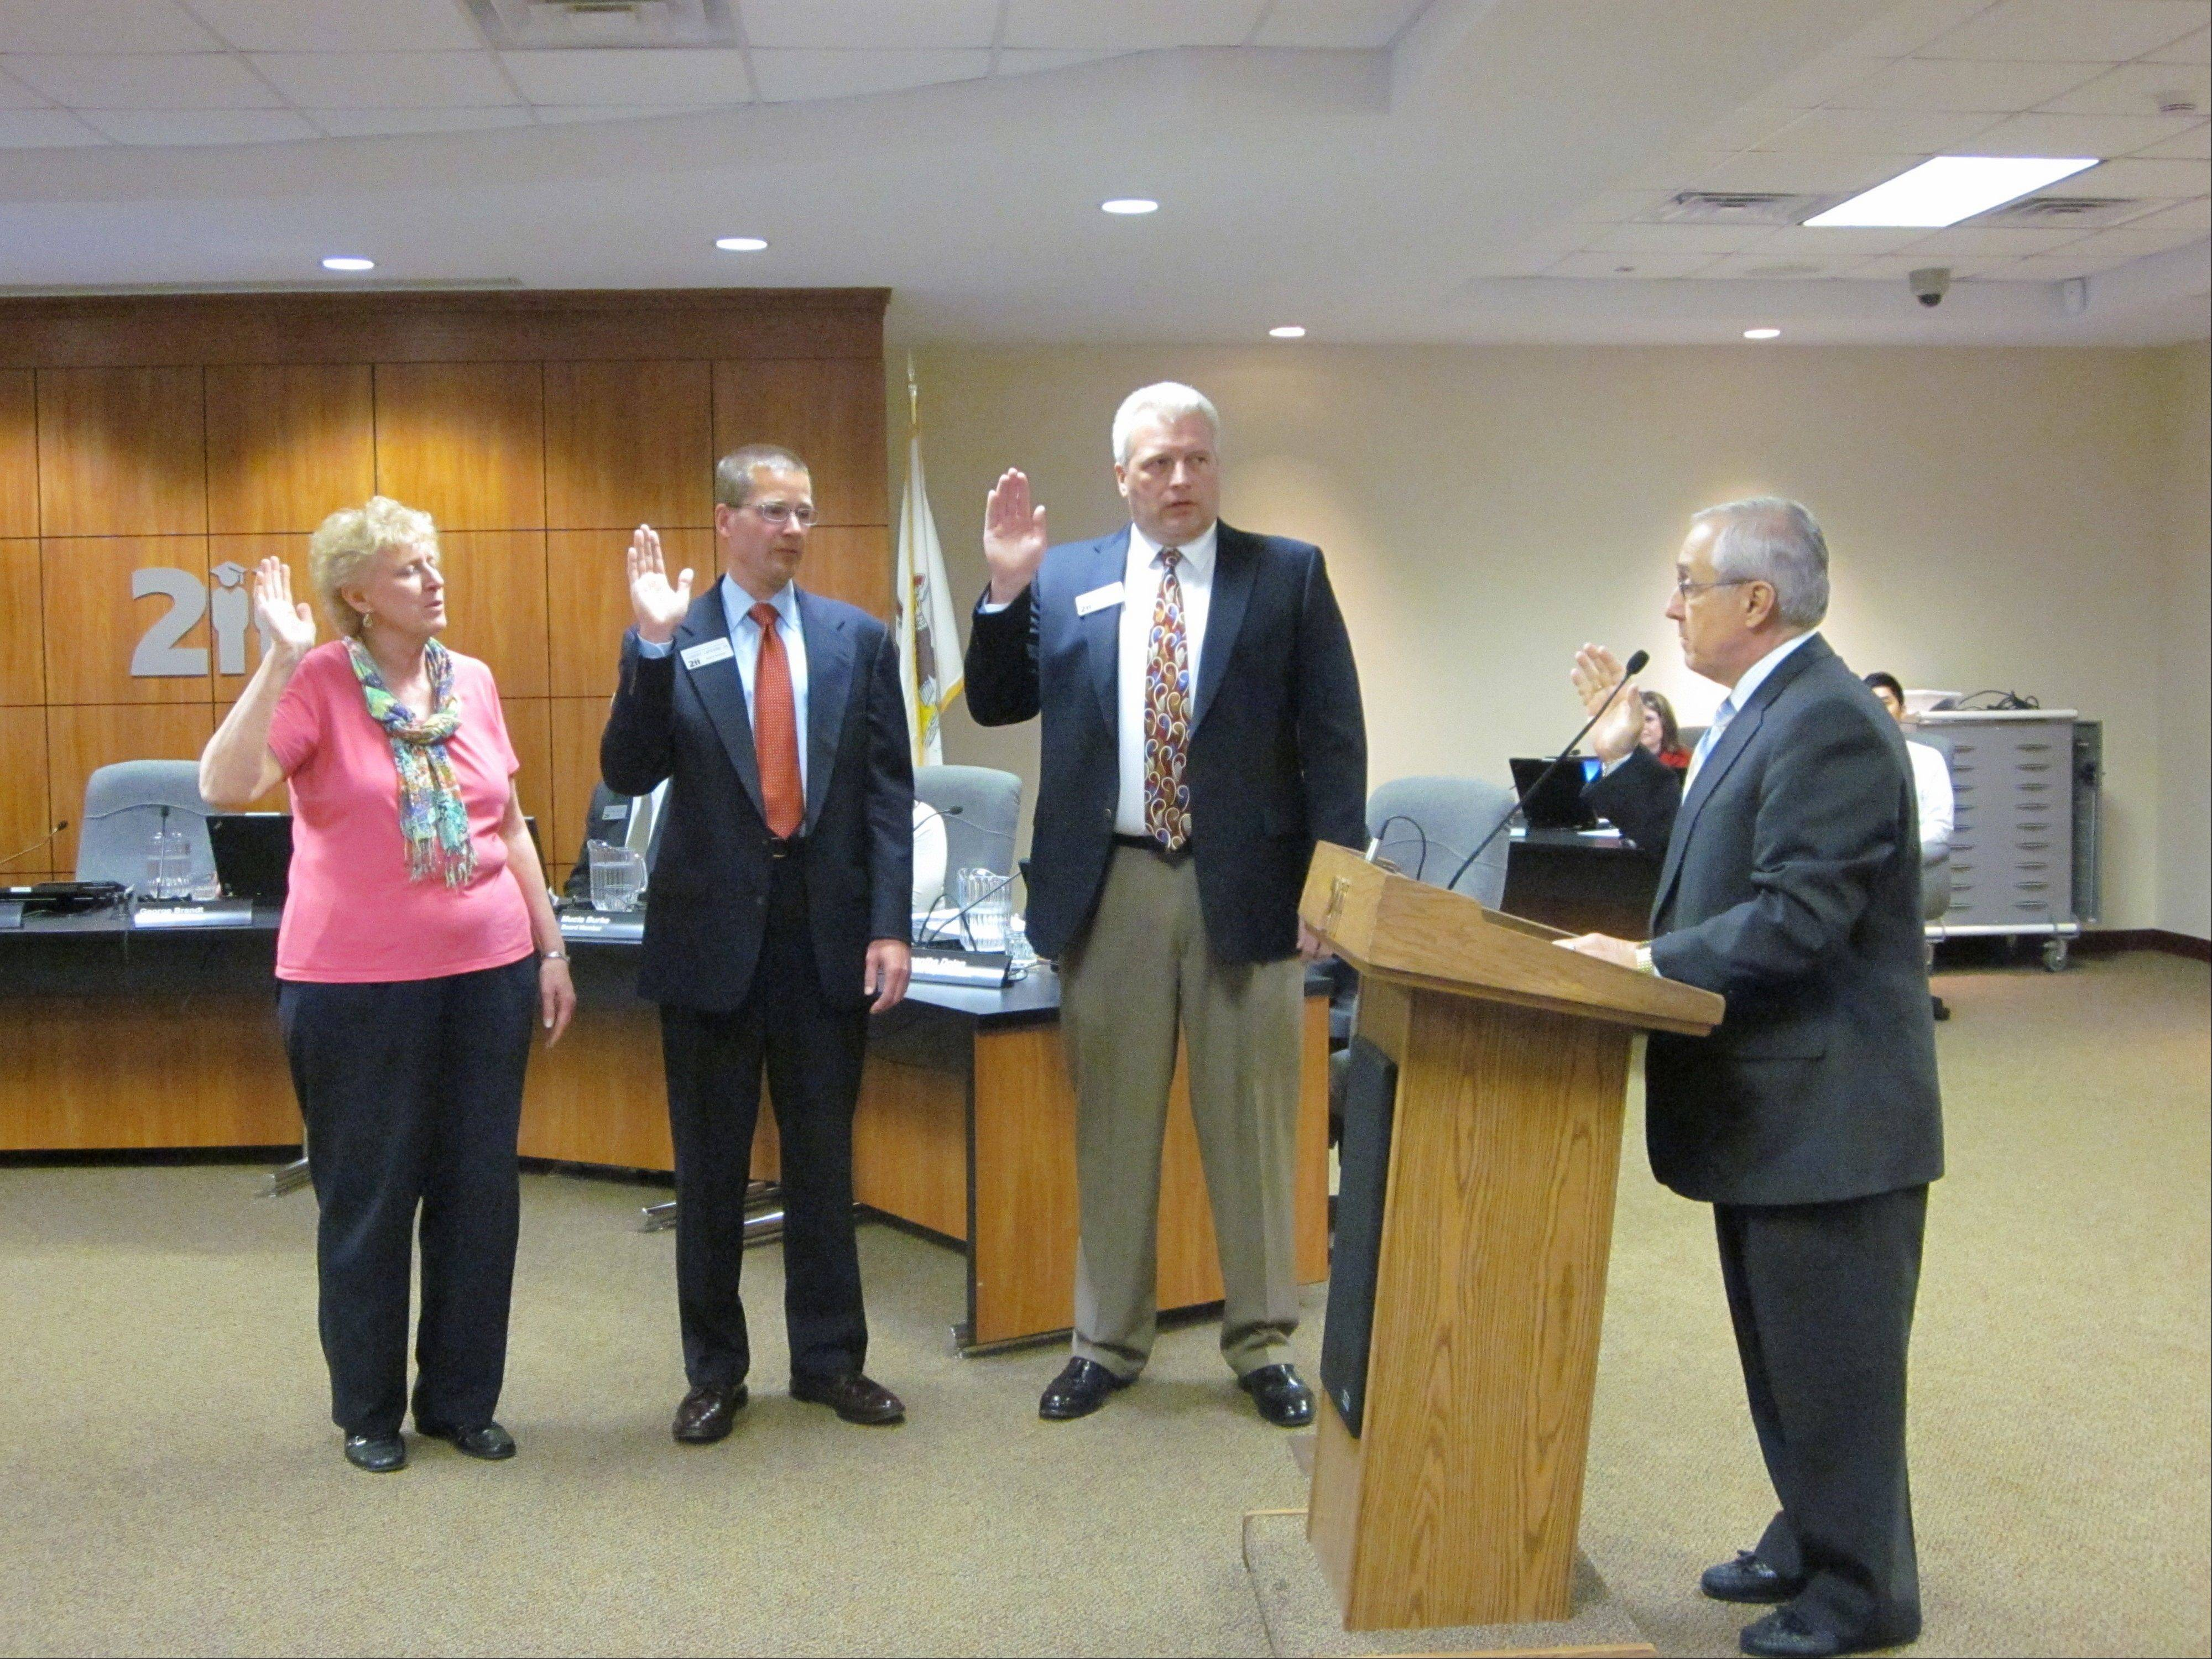 North Cook Intermediate Service Center Executive Director Robert Ingraffia, right, administers the oath of office to Anna Klimkowicz, left, Robert LeFevre, second to left, and Mike Scharringhausen, second to right, during the Palatine-Schaumburg High School District 211 board of education meeting Thursday.